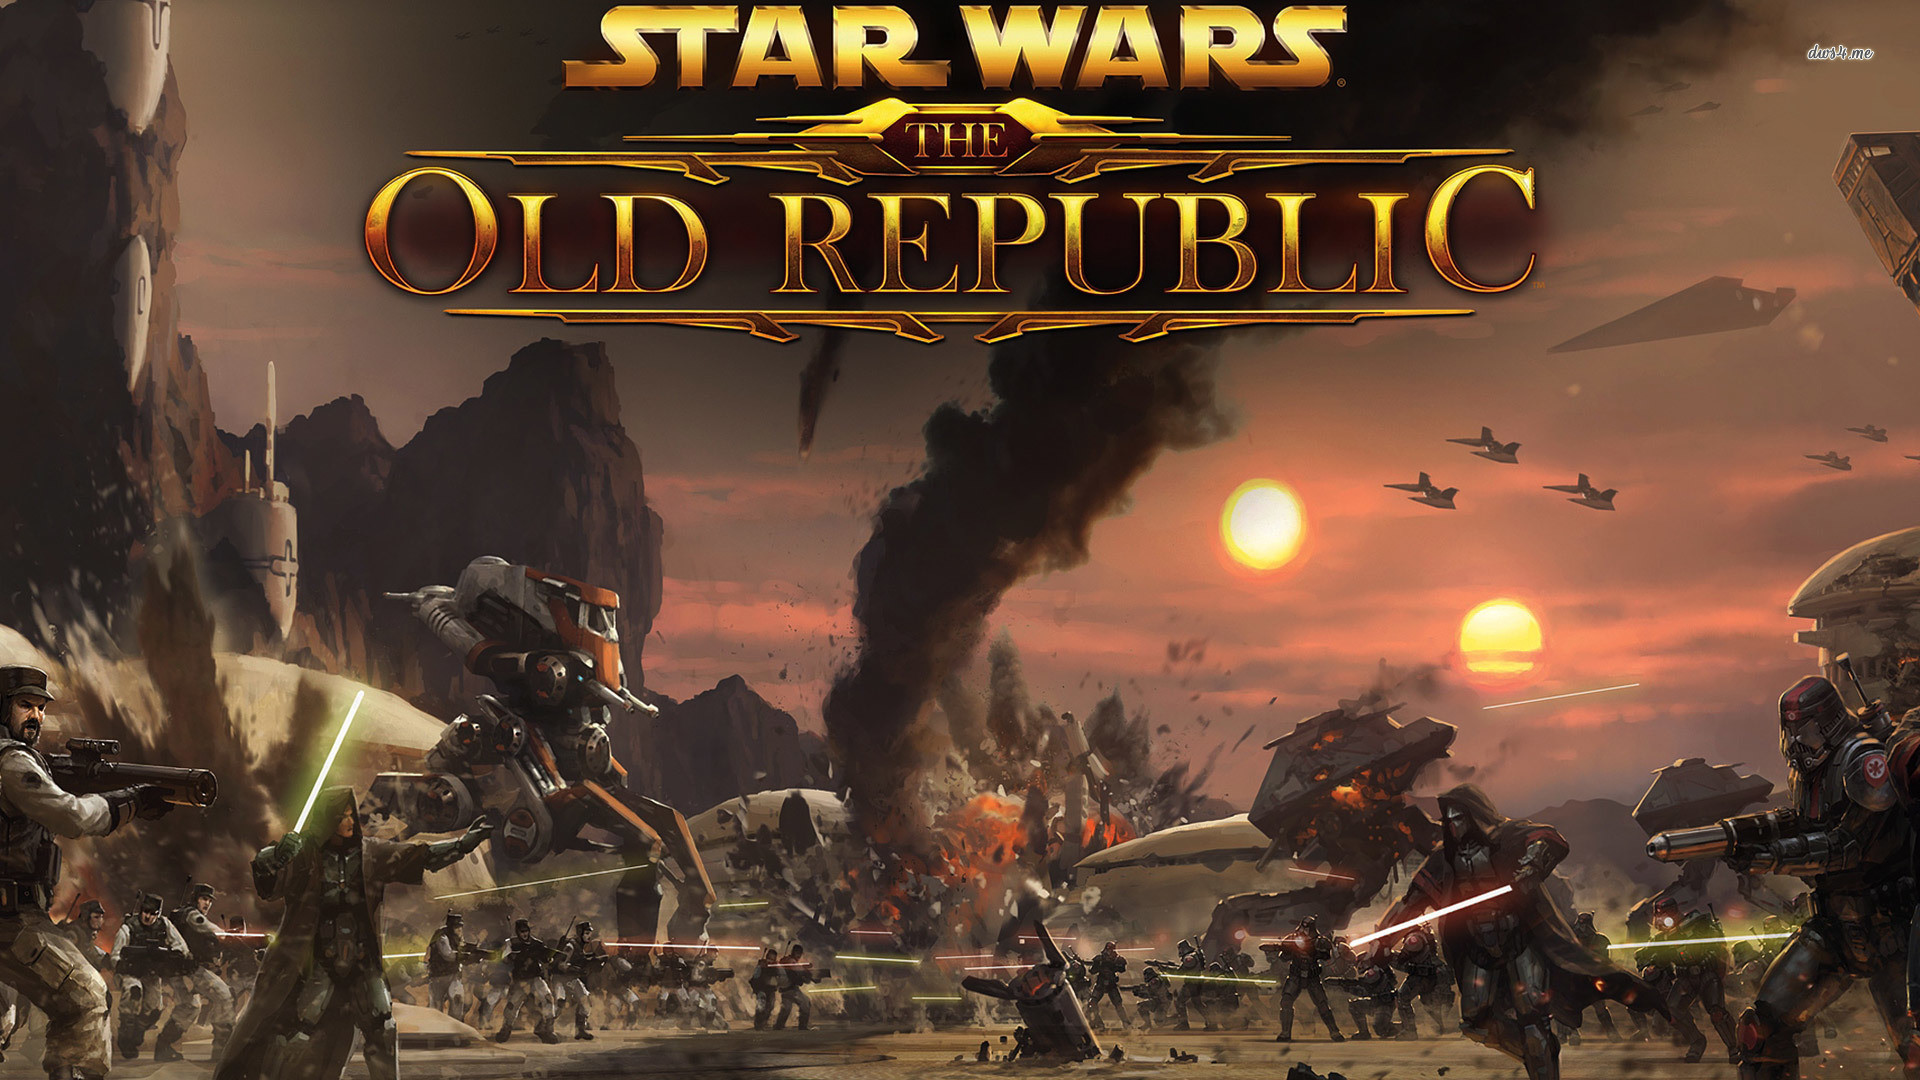 Star Wars Old Republic Wallpaper: Star Wars The Old Republic Backgrounds (77+ Images